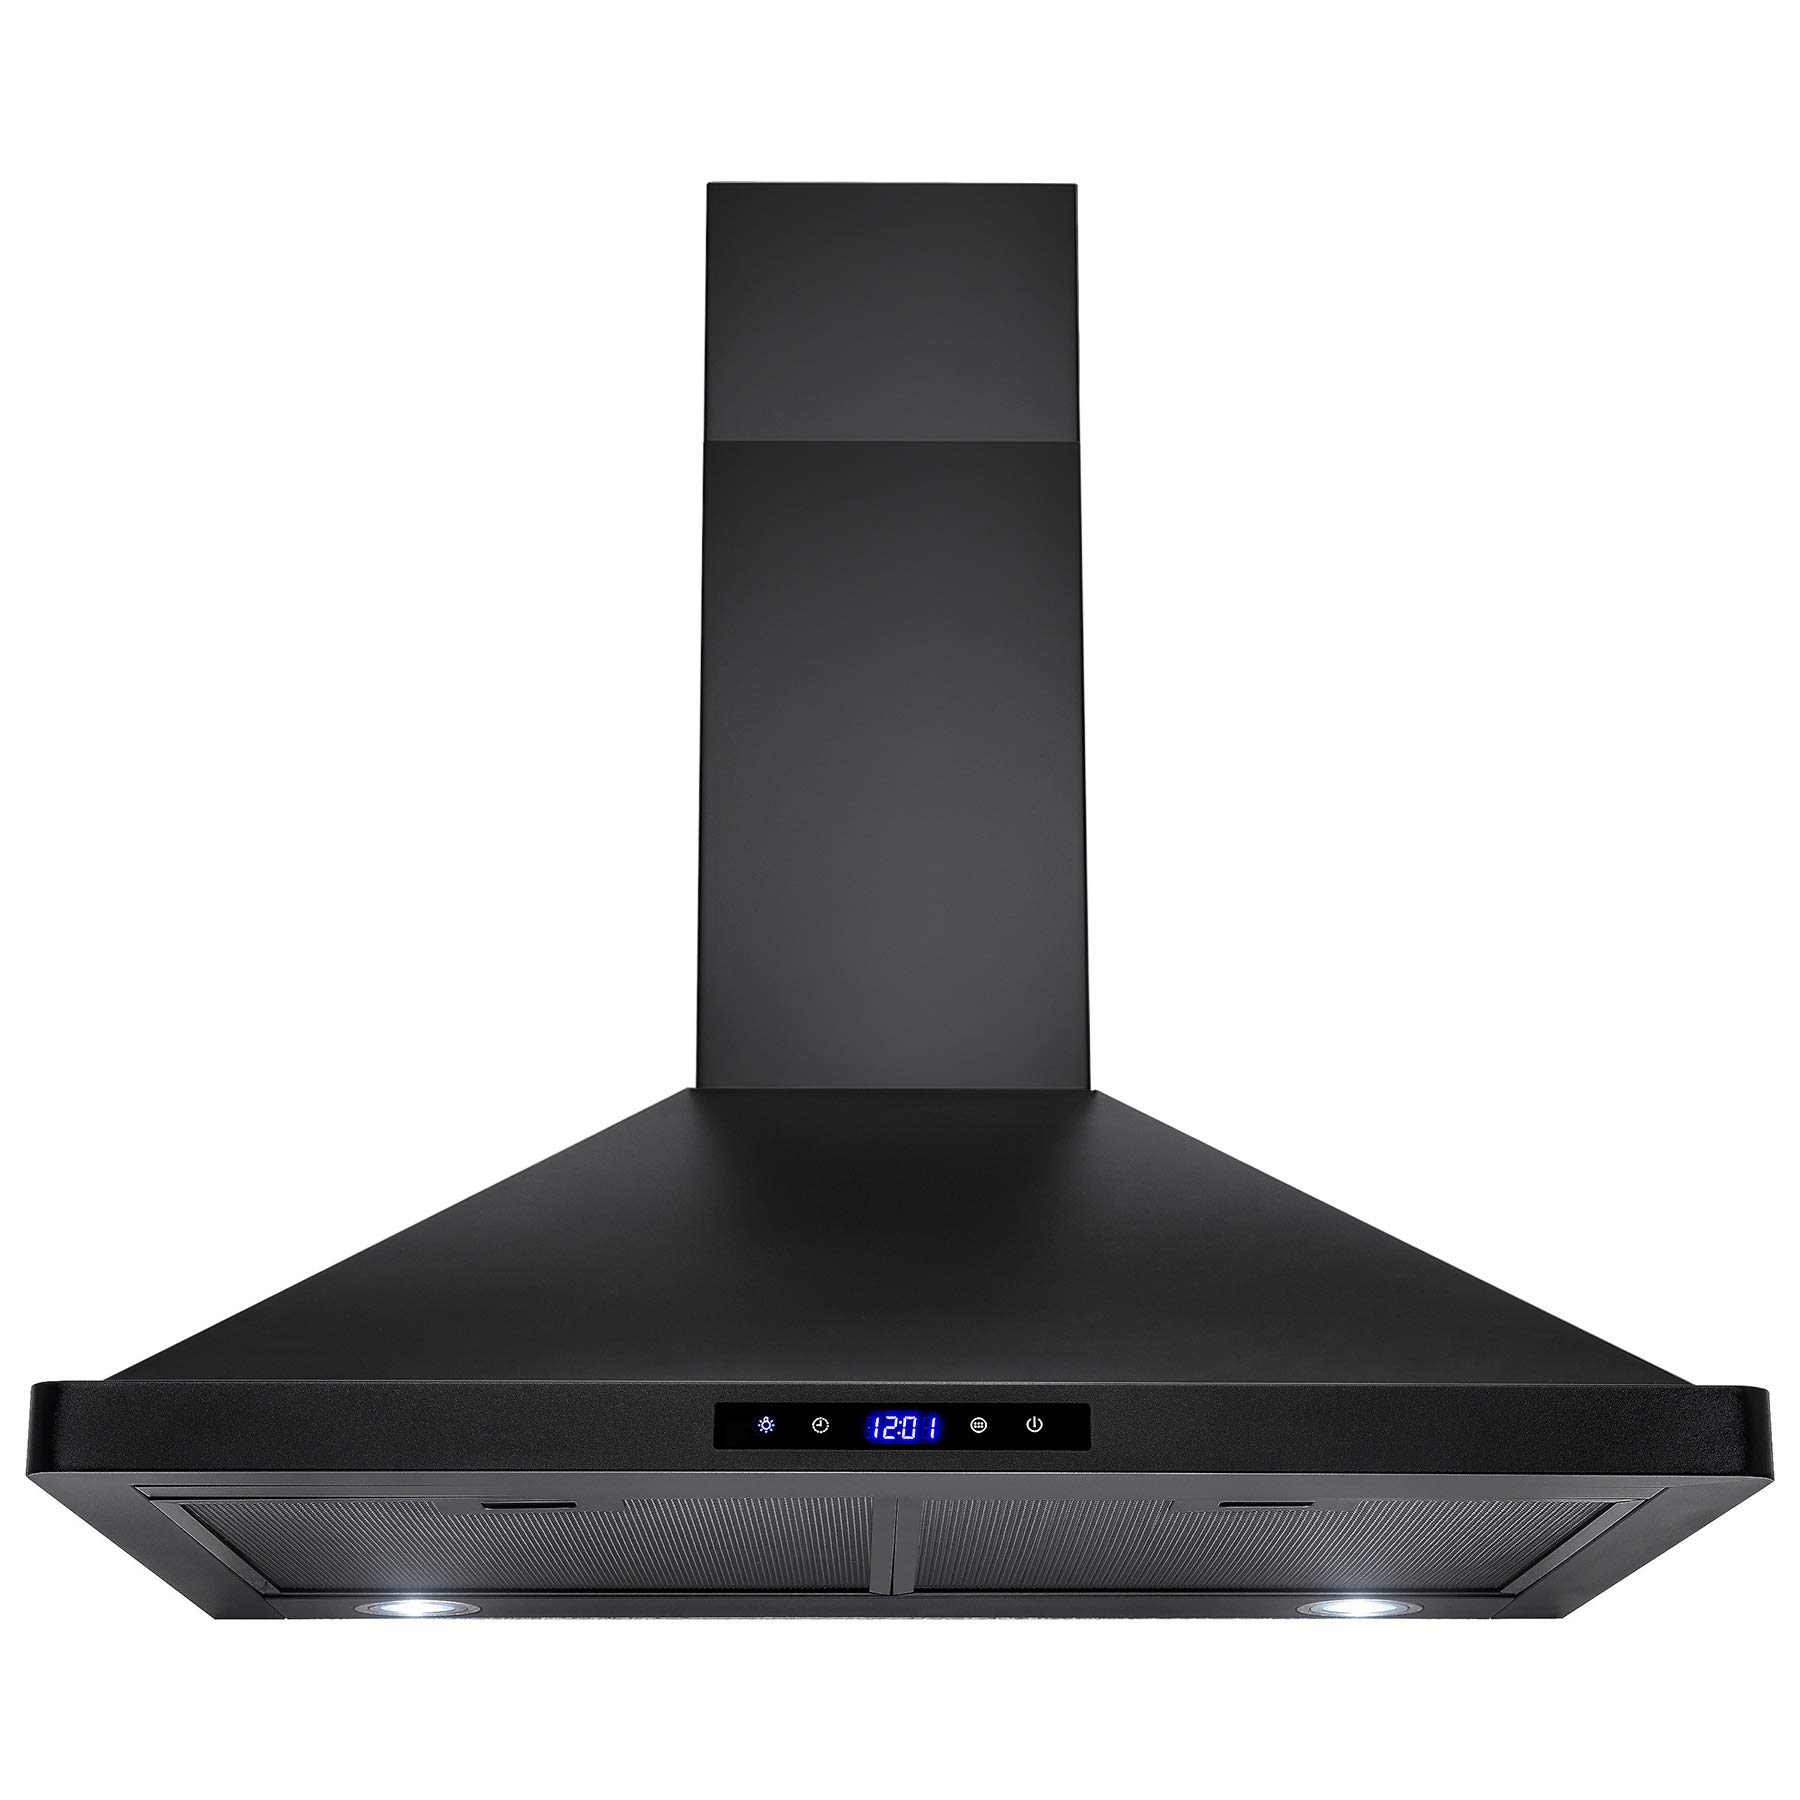 AKDY Convertible Kitchen Wall Mount Range Hood in Black Painted Stainless Steel with Lights (30 in.) by AKDY